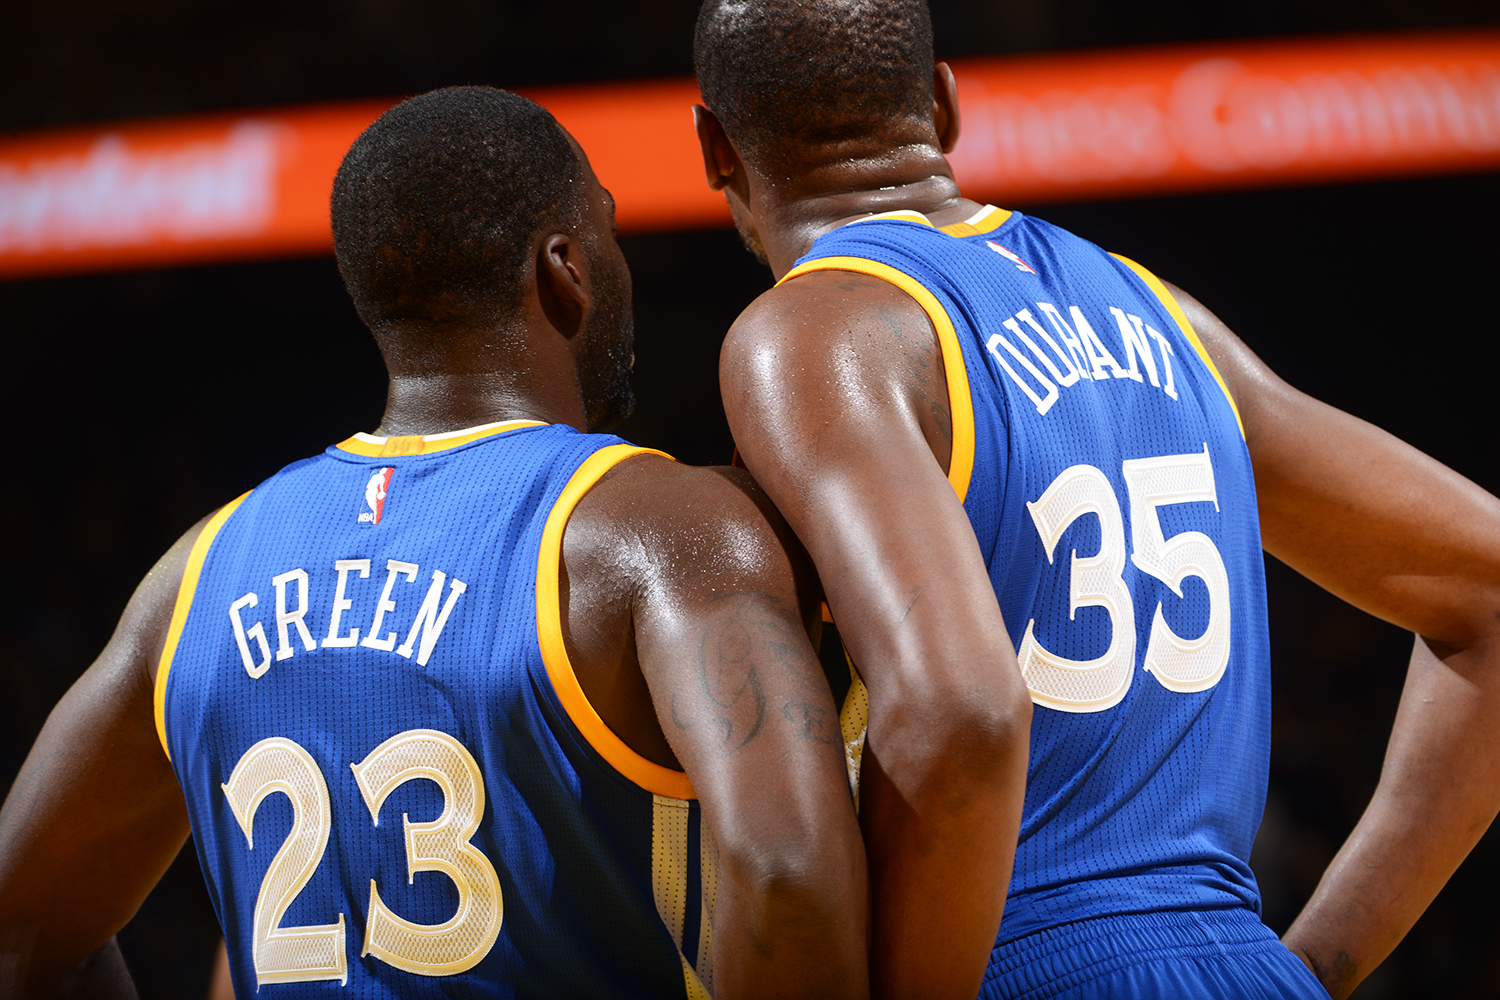 d977ca262922 Draymond Green Kevin Durant. Draymond Green called Kevin Durant right after  the Golden State Warriors lost ...